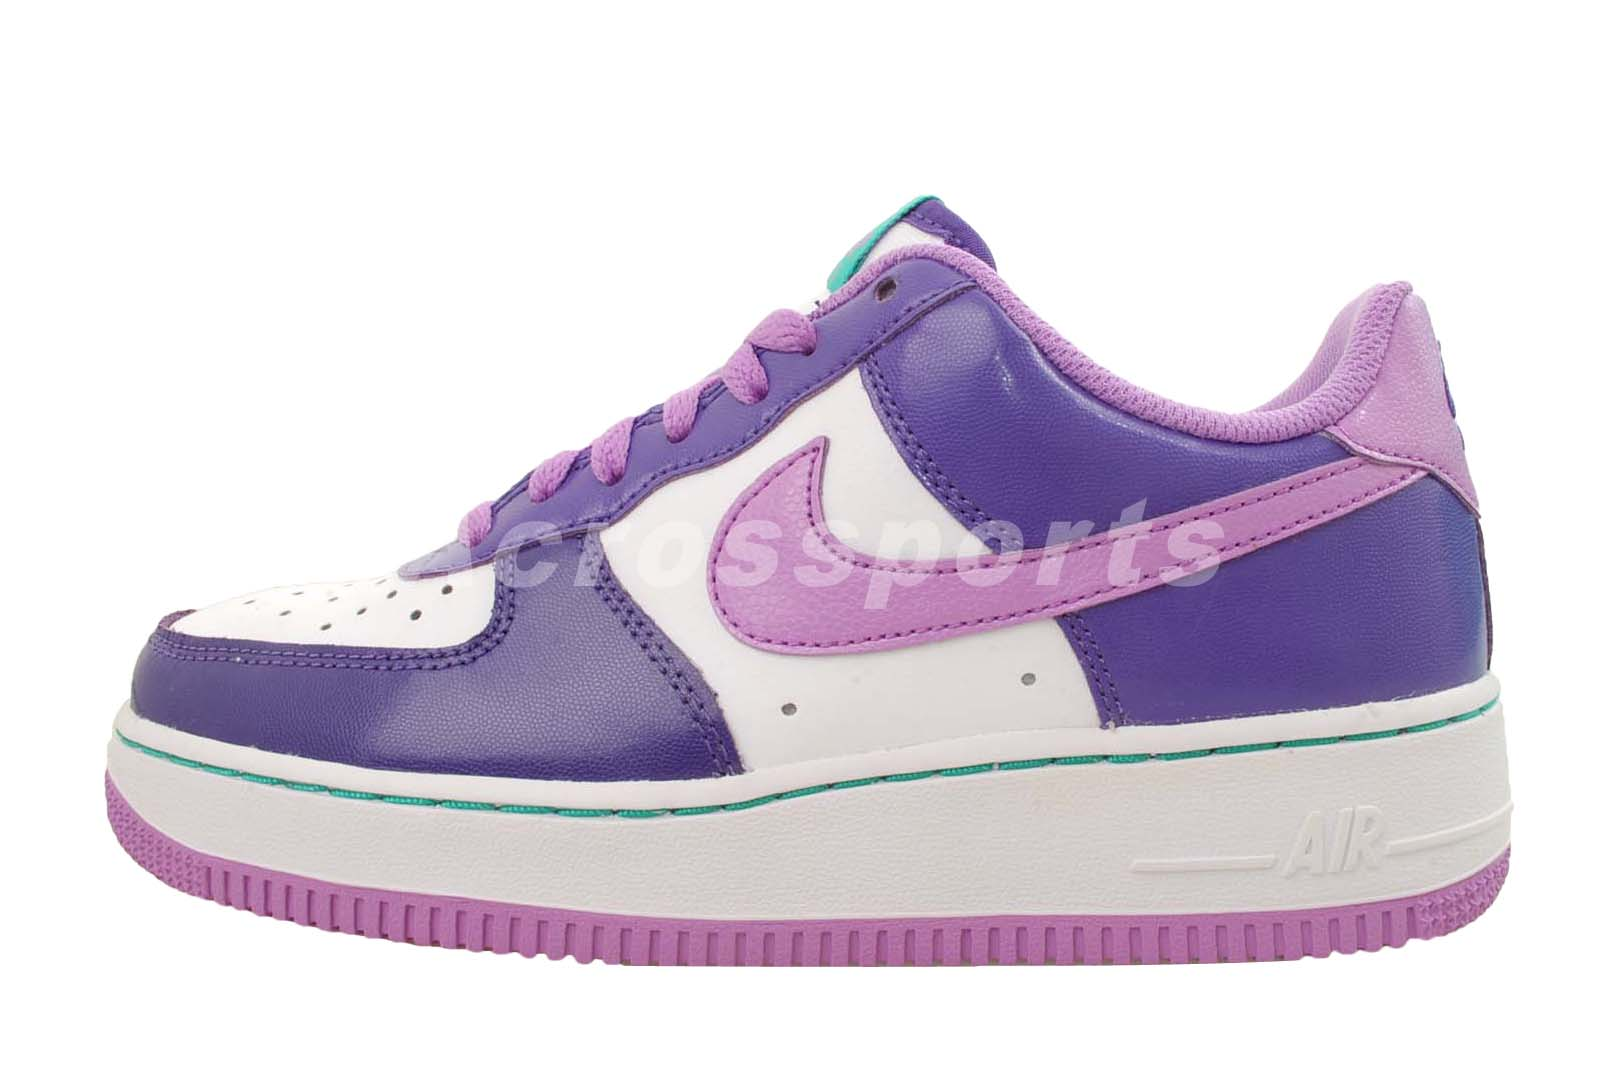 Lastest Nike Casual Shoes For Women 2013 113 X 150